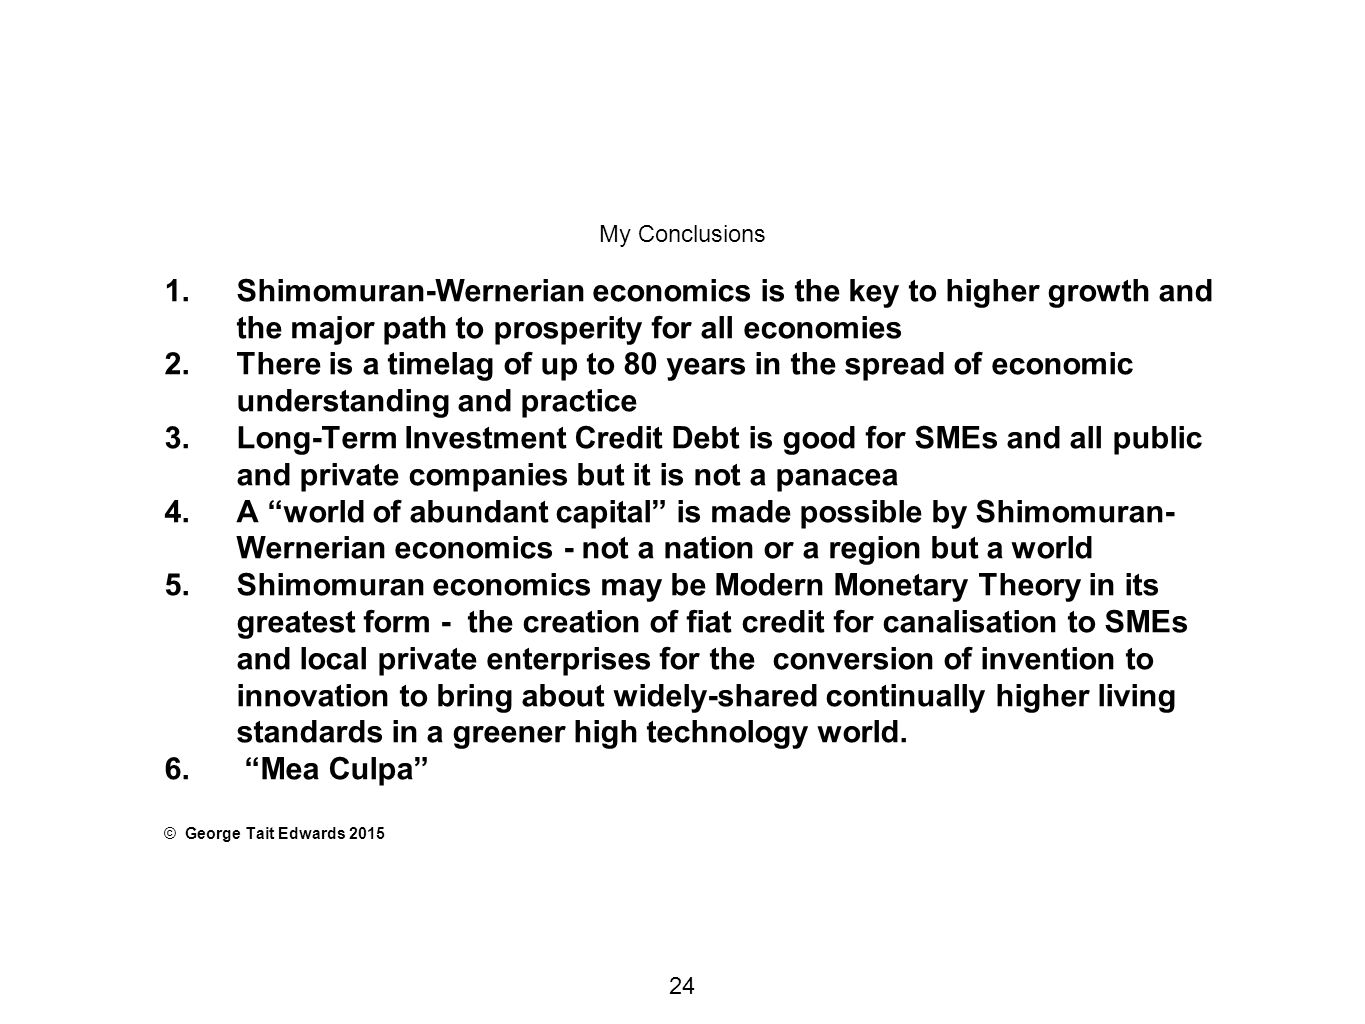 My Conclusions 1.Shimomuran-Wernerian economics is the key to higher growth and the major path to prosperity for all economies 2.There is a timelag of up to 80 years in the spread of economic understanding and practice 3.Long-Term Investment Credit Debt is good for SMEs and all public and private companies but it is not a panacea 4.A world of abundant capital is made possible by Shimomuran- Wernerian economics - not a nation or a region but a world 5.Shimomuran economics may be Modern Monetary Theory in its greatest form - the creation of fiat credit for canalisation to SMEs and local private enterprises for the conversion of invention to innovation to bring about widely-shared continually higher living standards in a greener high technology world.